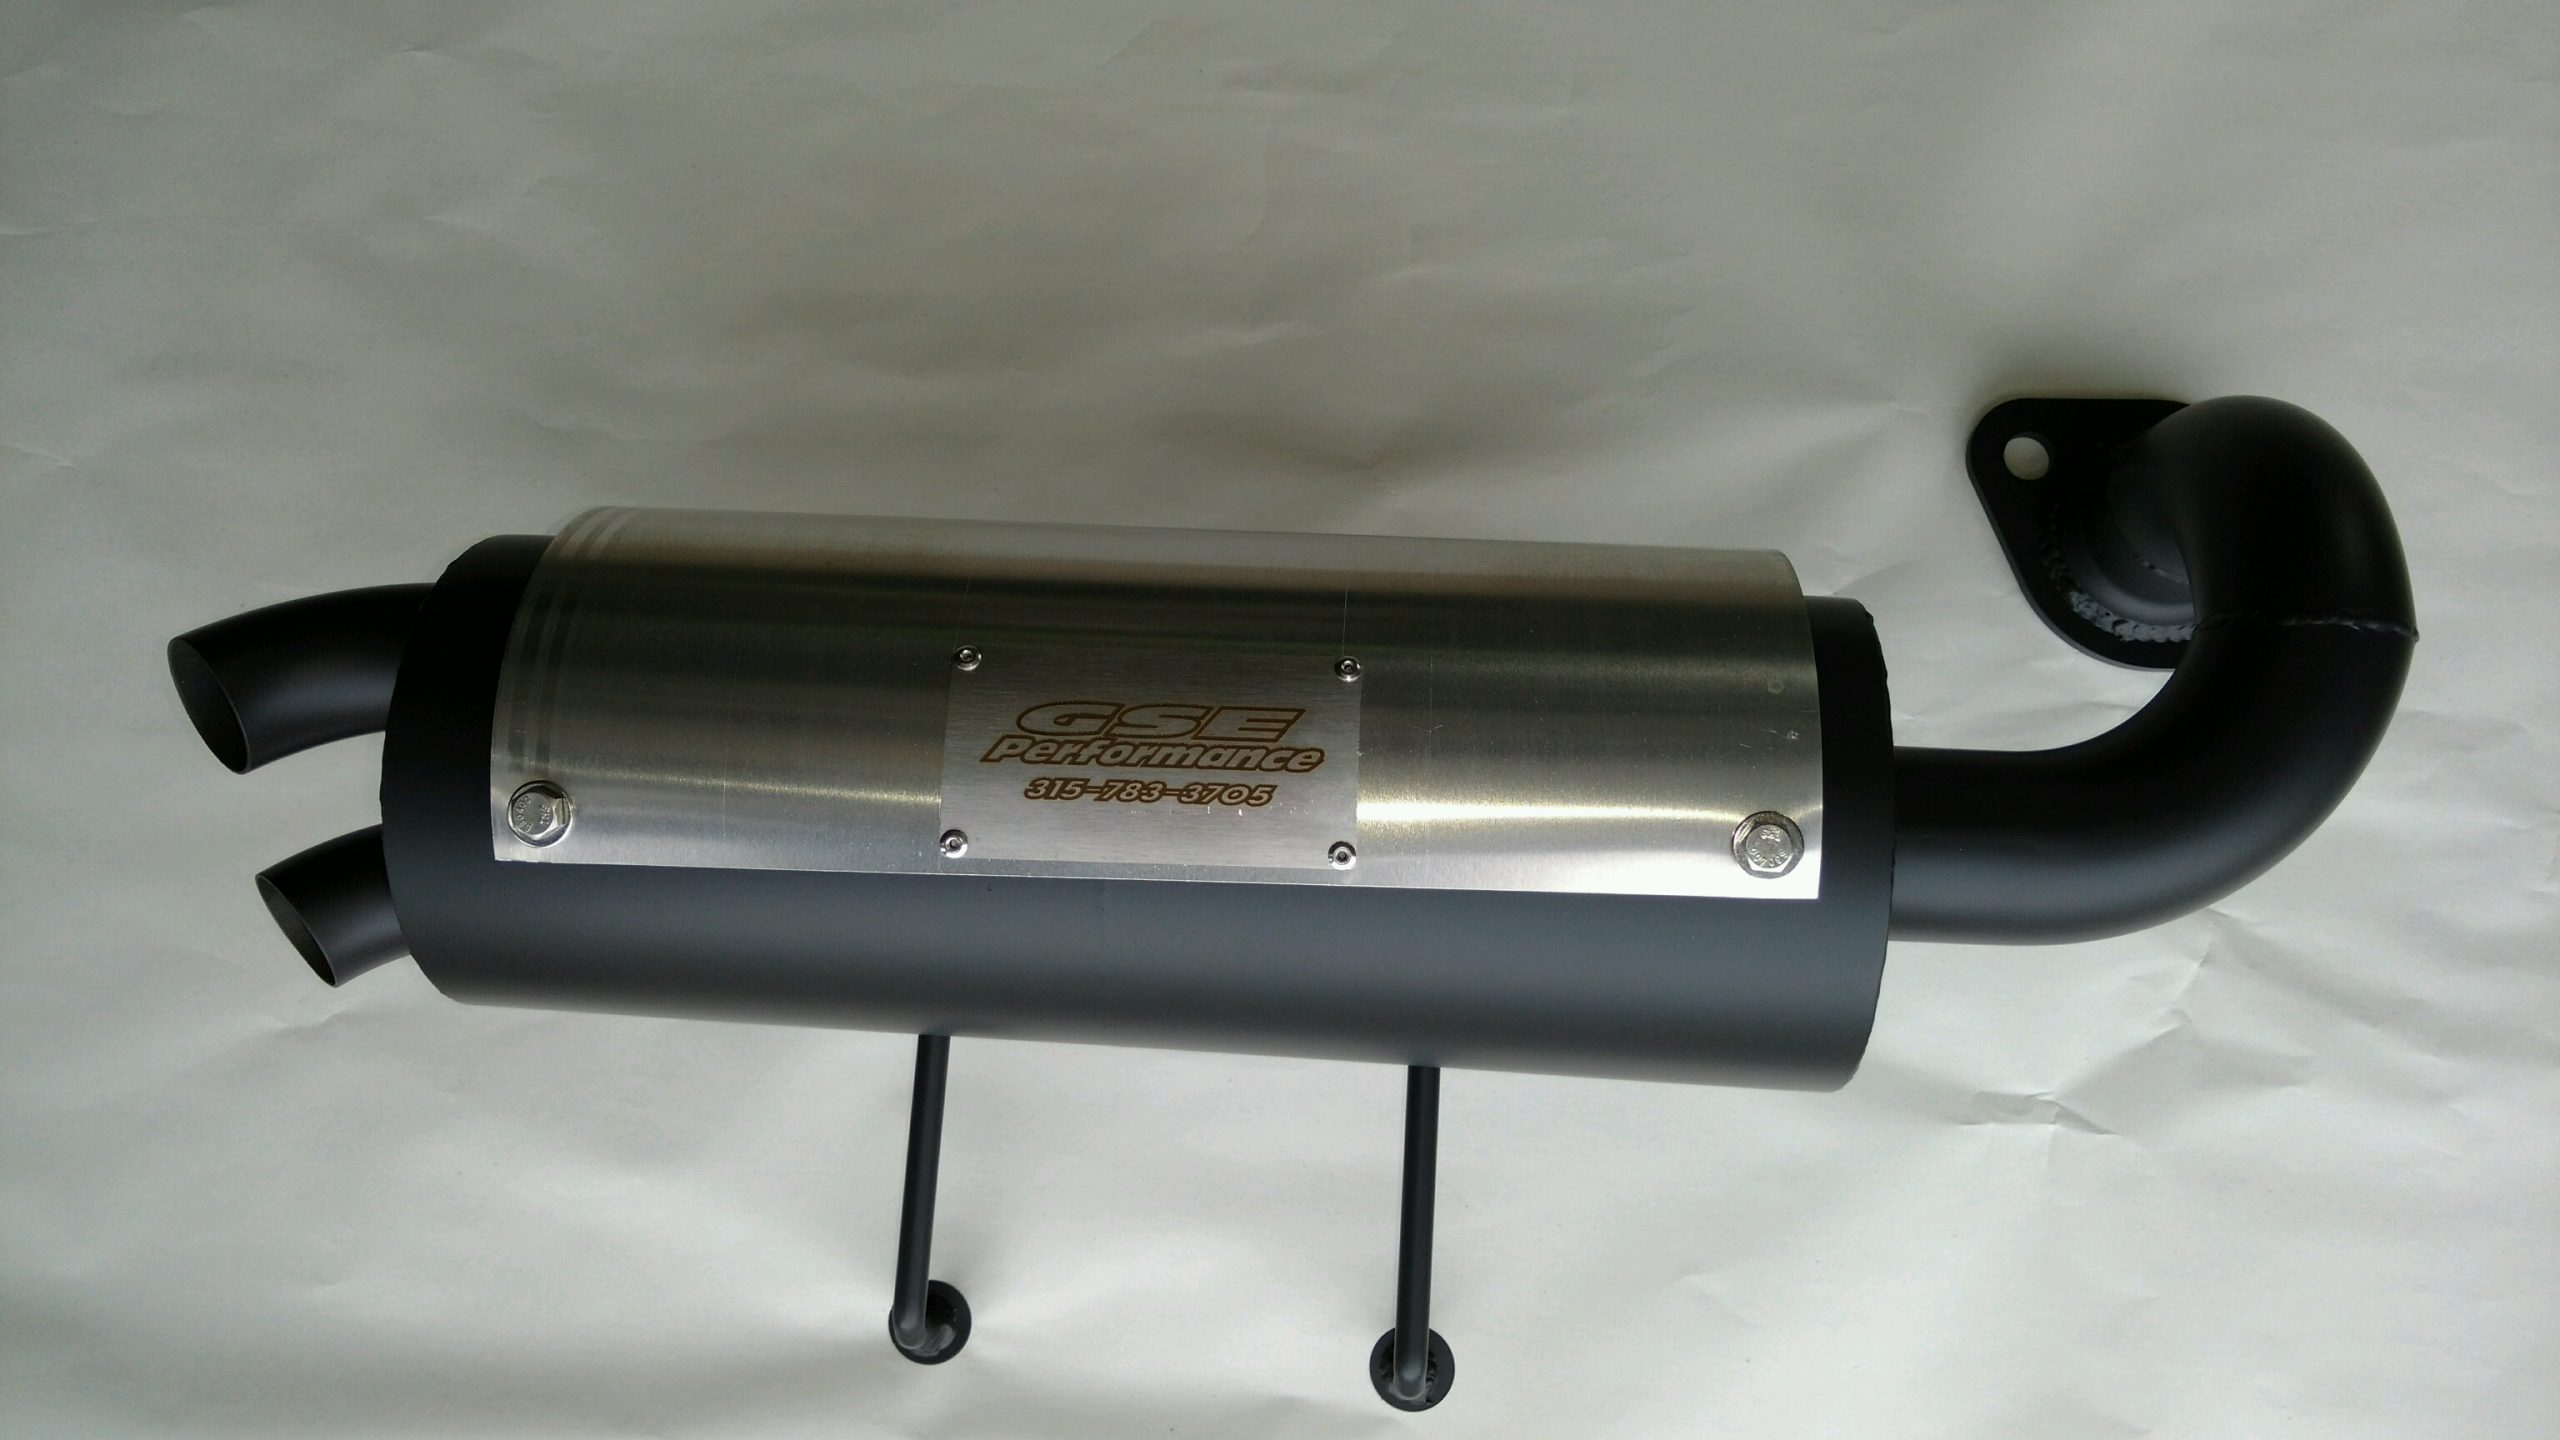 POLARIS RZR 1000 S 1000 GENERAL TRAIL TAMER MUFFLER by GSE Performance